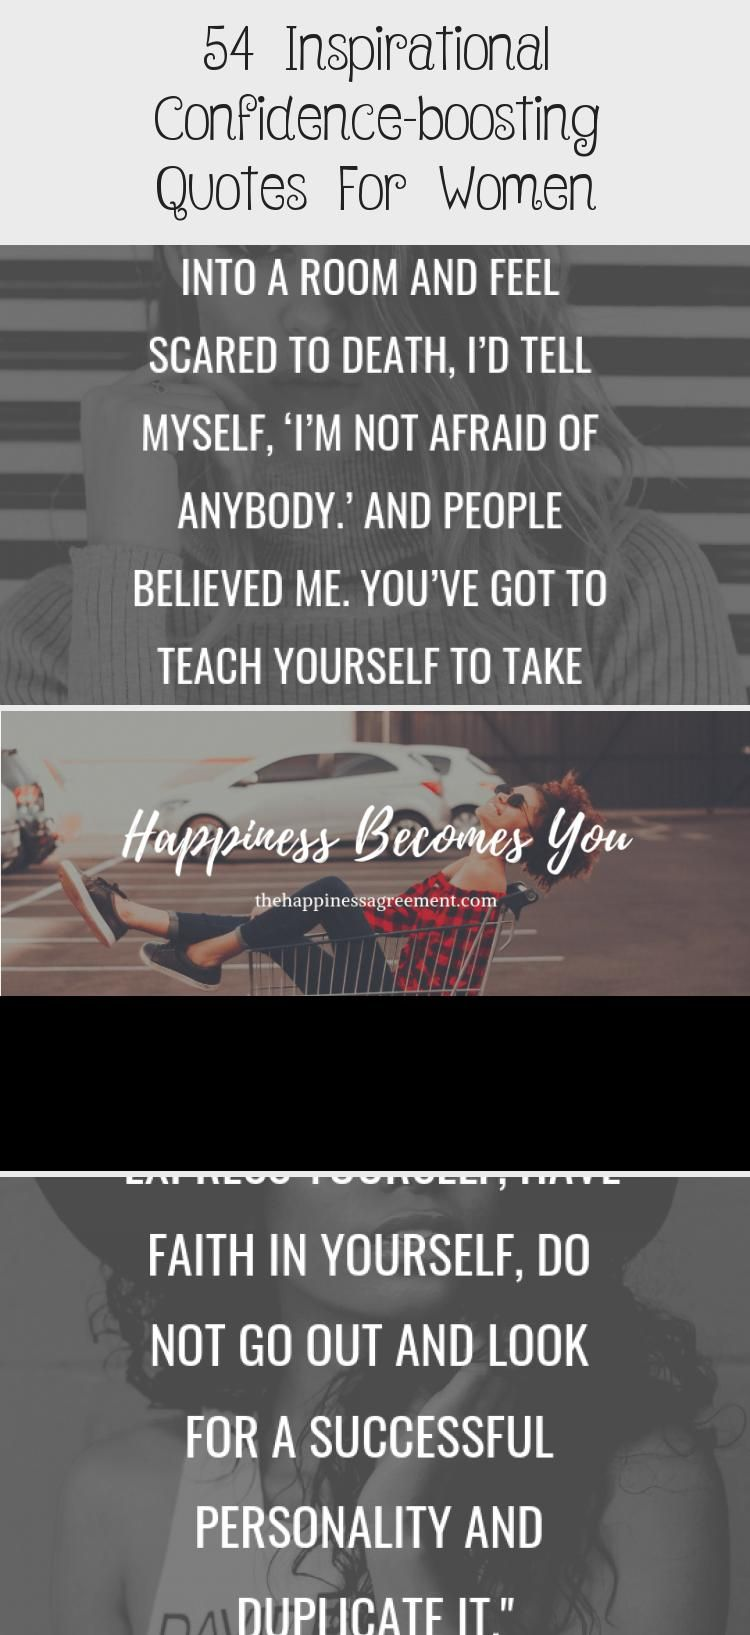 54 Inspirational Confidence Boosting Quotes For Women Confidence Boosting Quotes Woman Quotes Confidence Boost